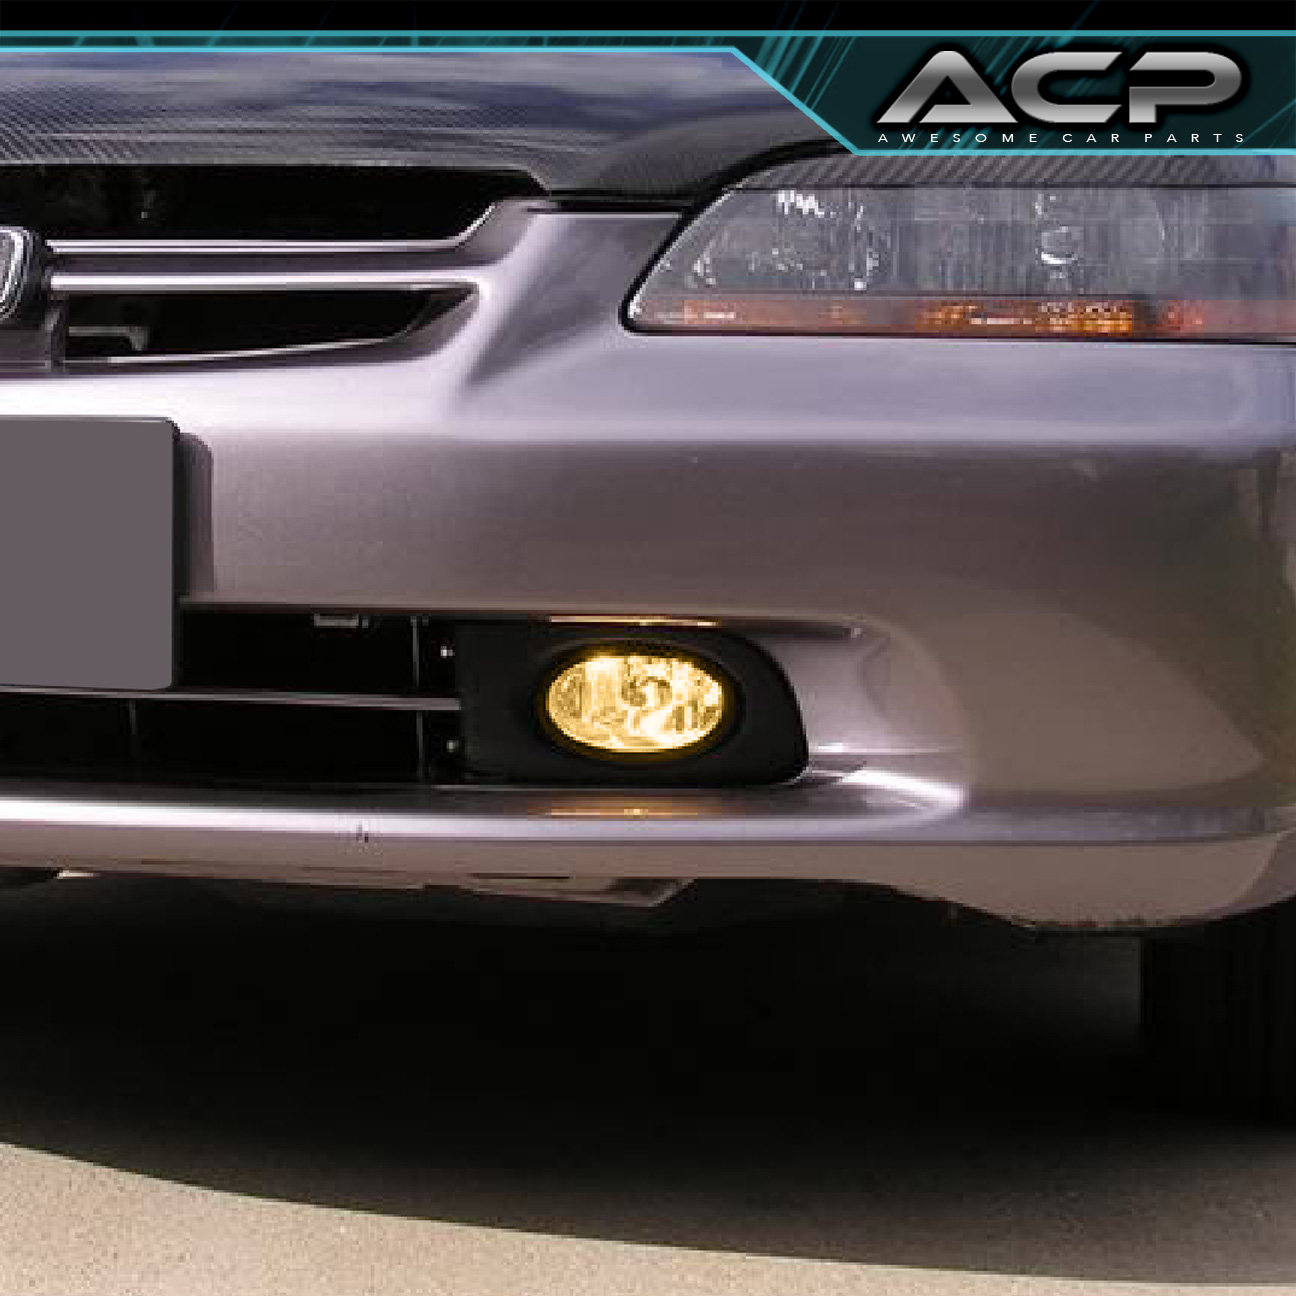 hight resolution of 01 03 civic 98 00 accord jdm 2 4 dr em cg fog lights lamps clear wiring harness